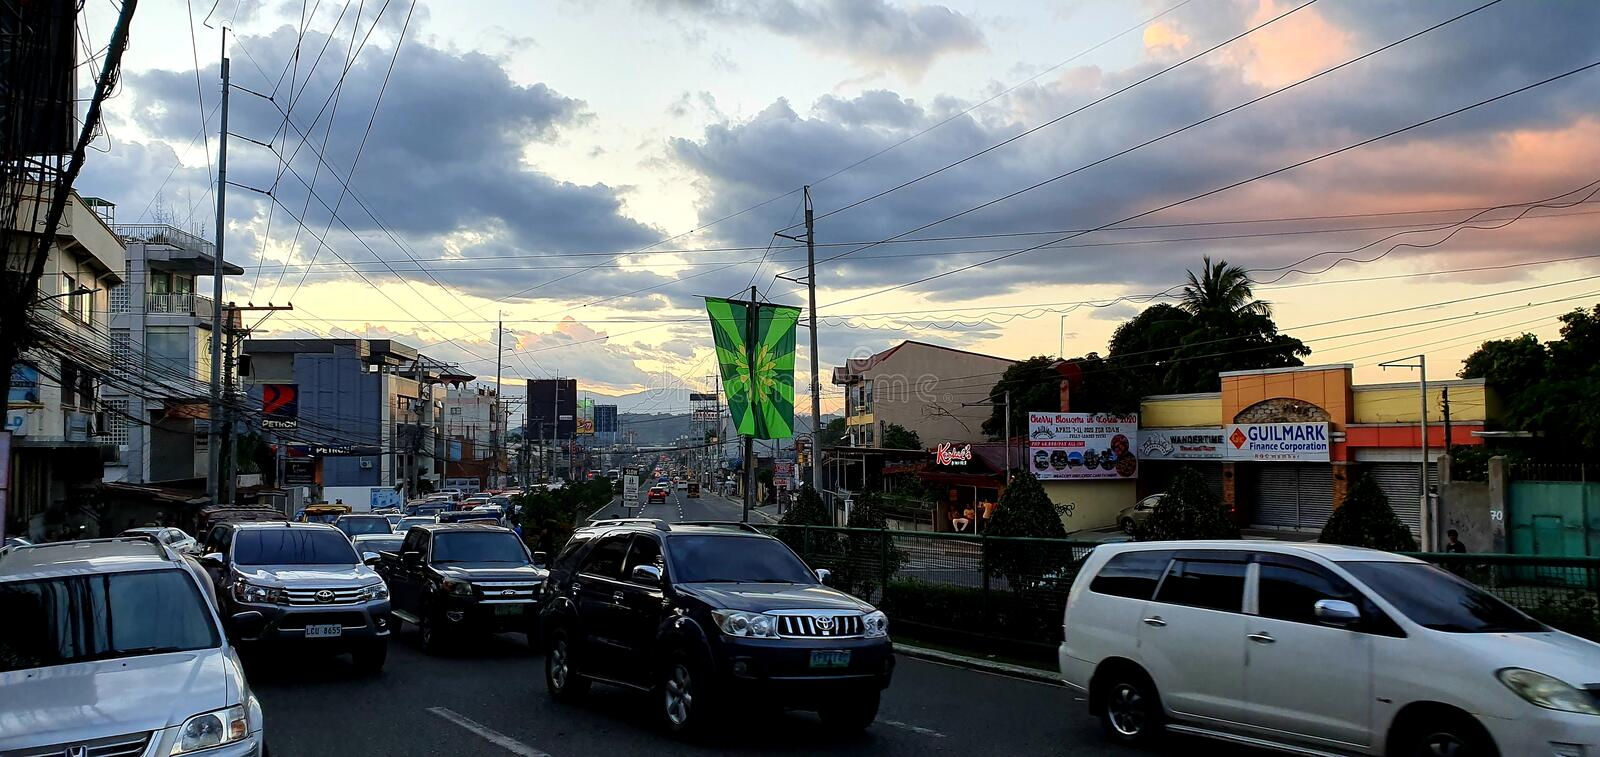 Traffic Starts To Build Up as the Sun Sets in Davao City, Philippines royalty free stock photography